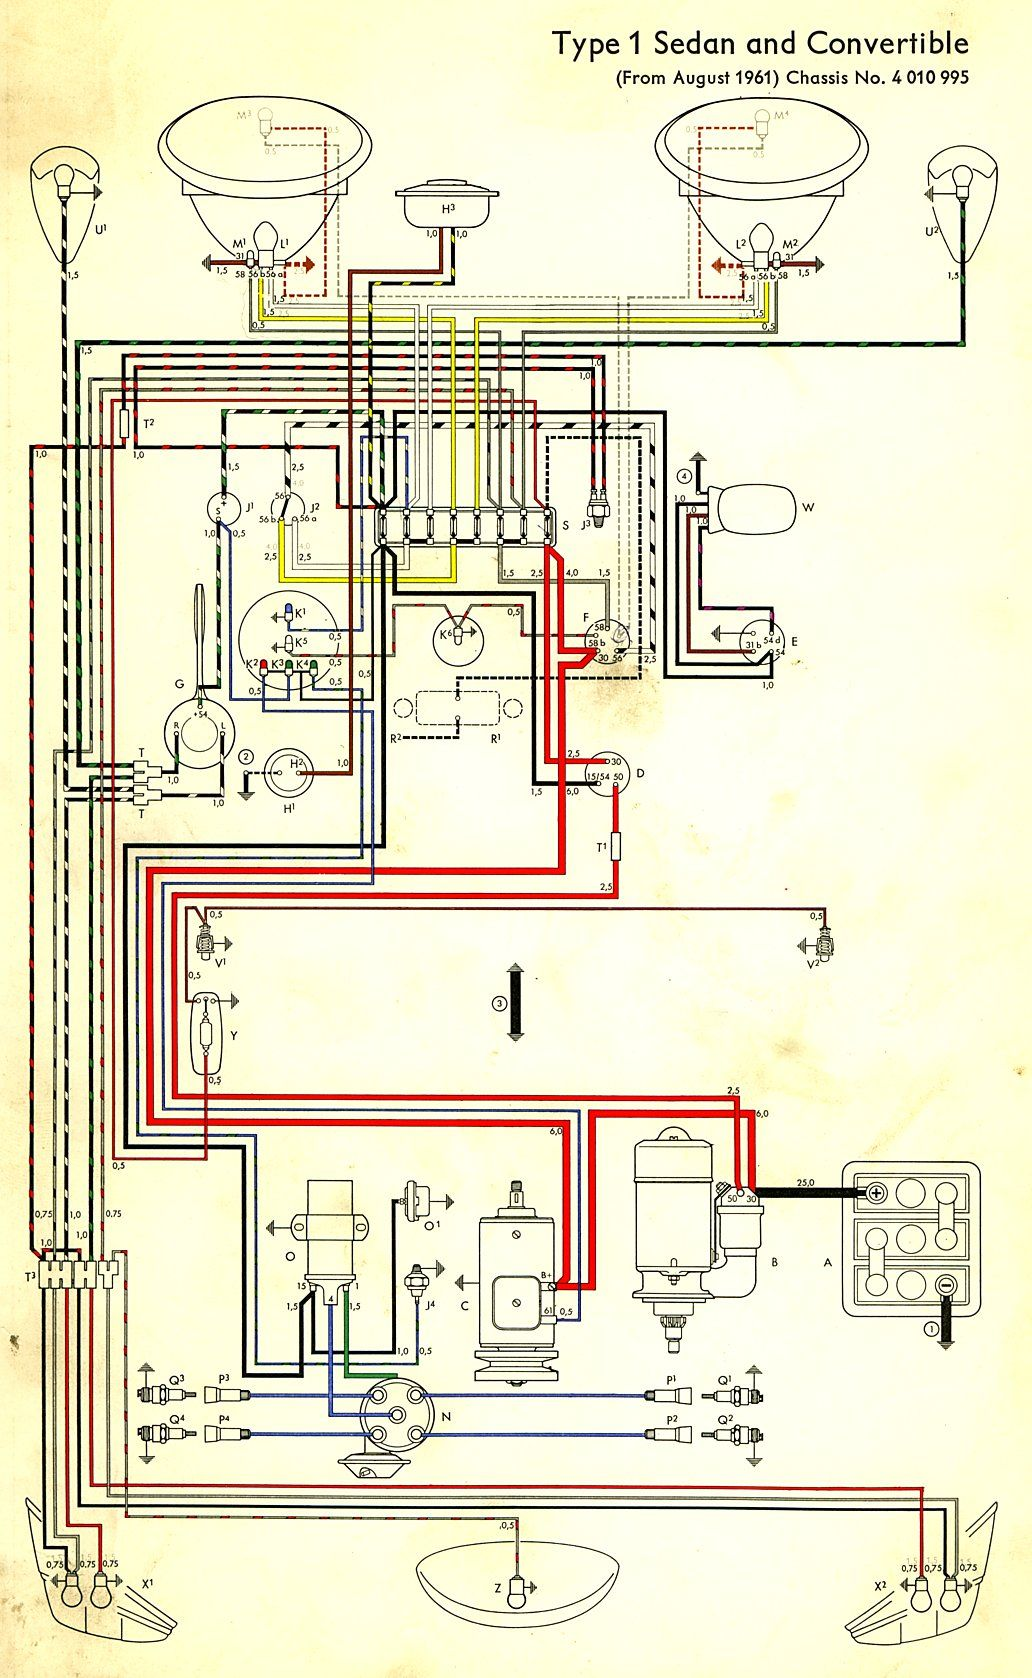 medium resolution of wiring diagram in color 1964 vw bug beetle convertible the samba wiring diagram for 1964 vw bus